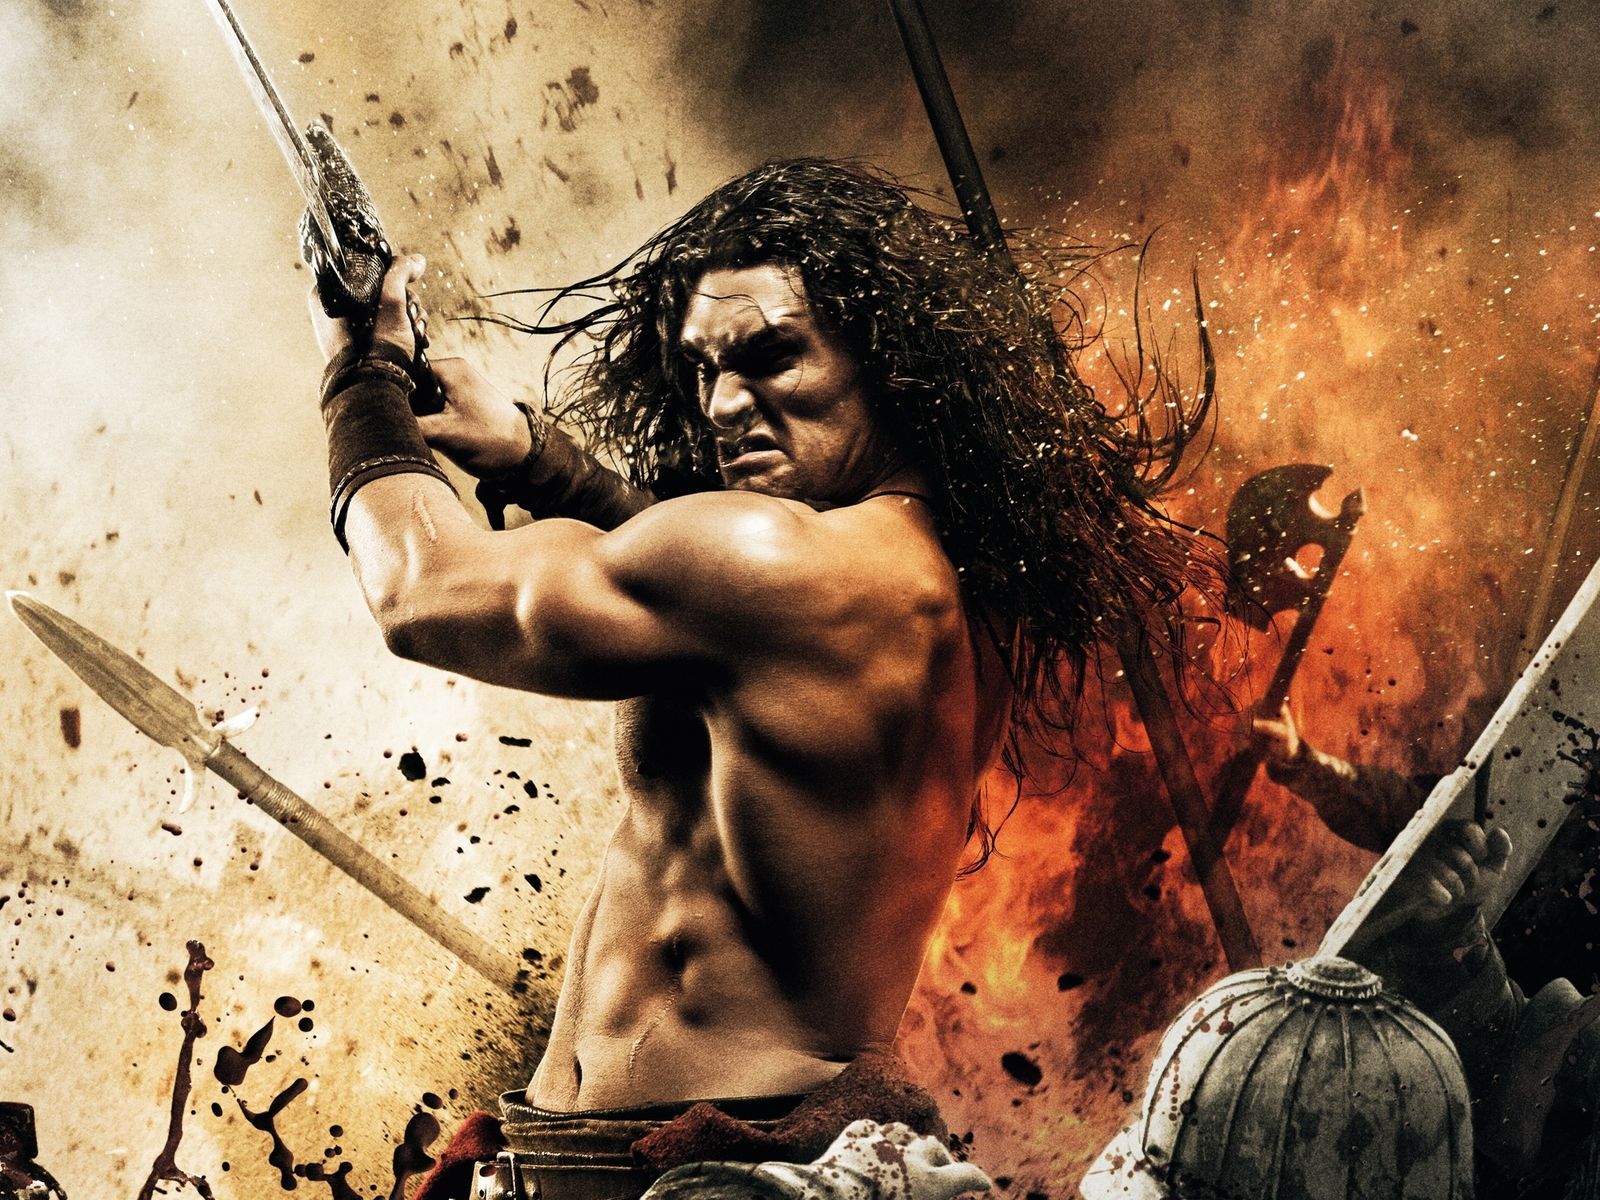 conan the barbarian 2011 download